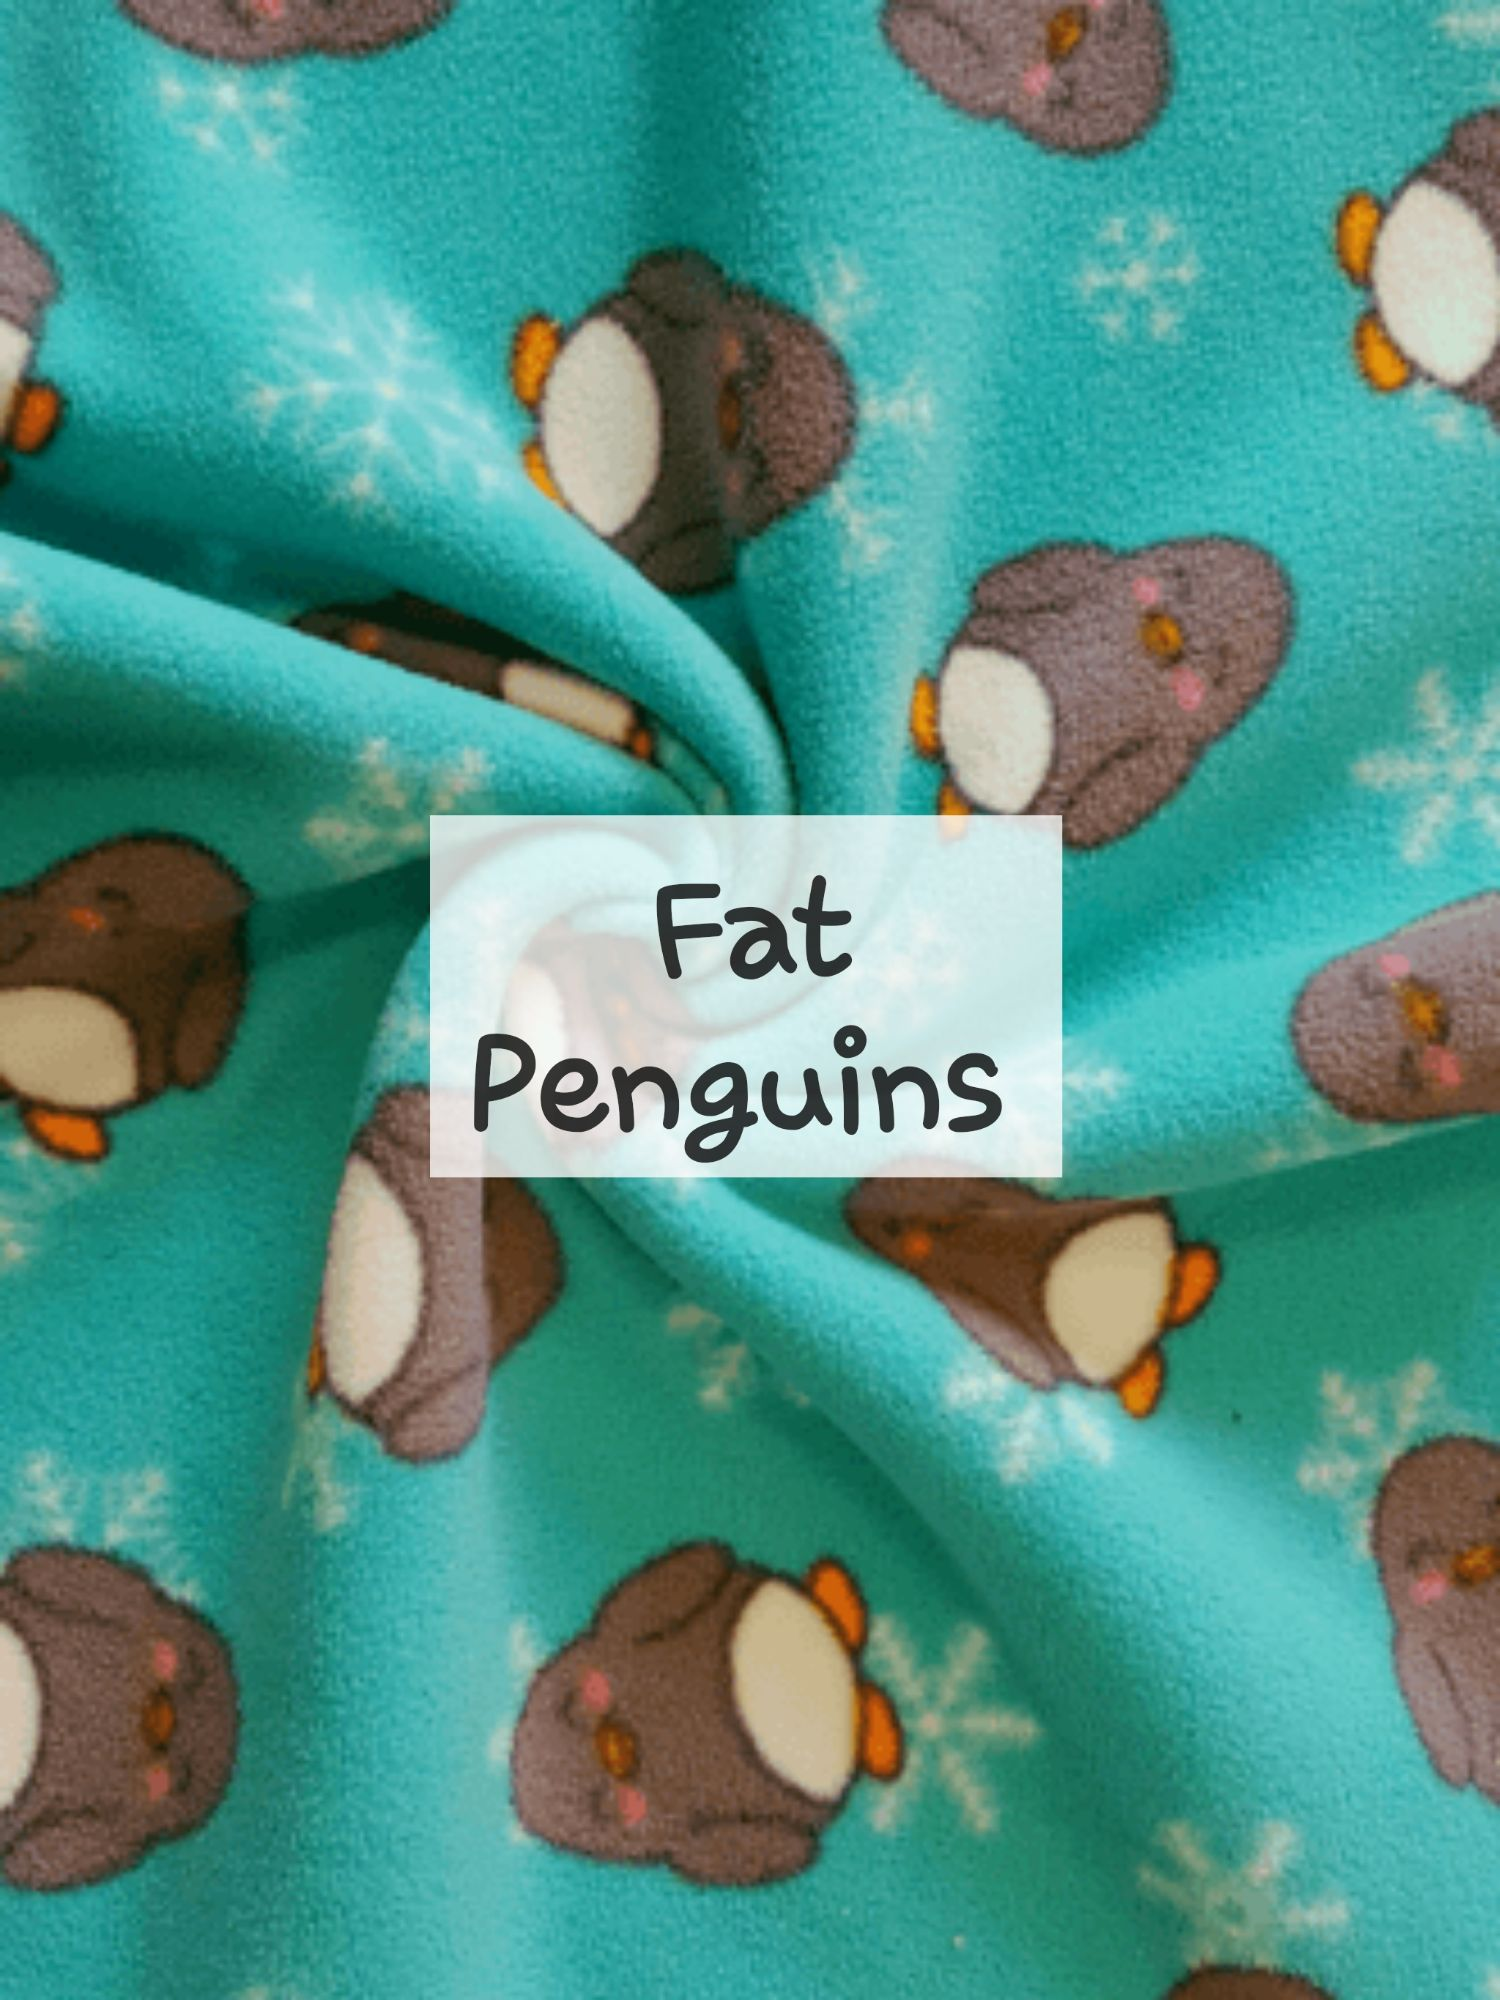 Fat Penguins fleece